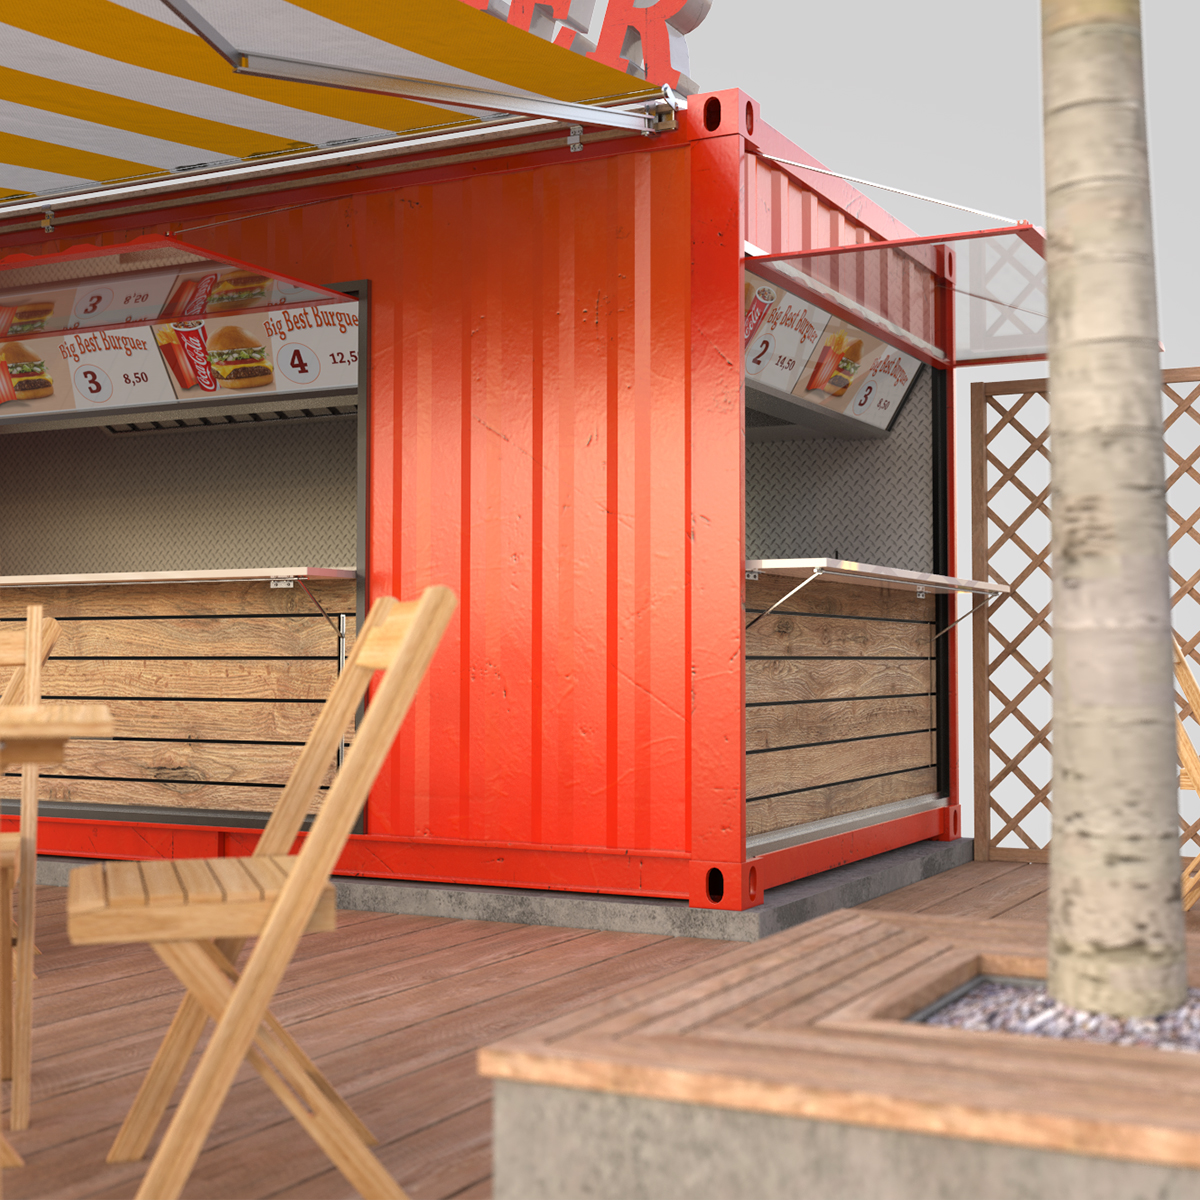 shipping container food stand 3d model max fbx ma mb texture obj 278562